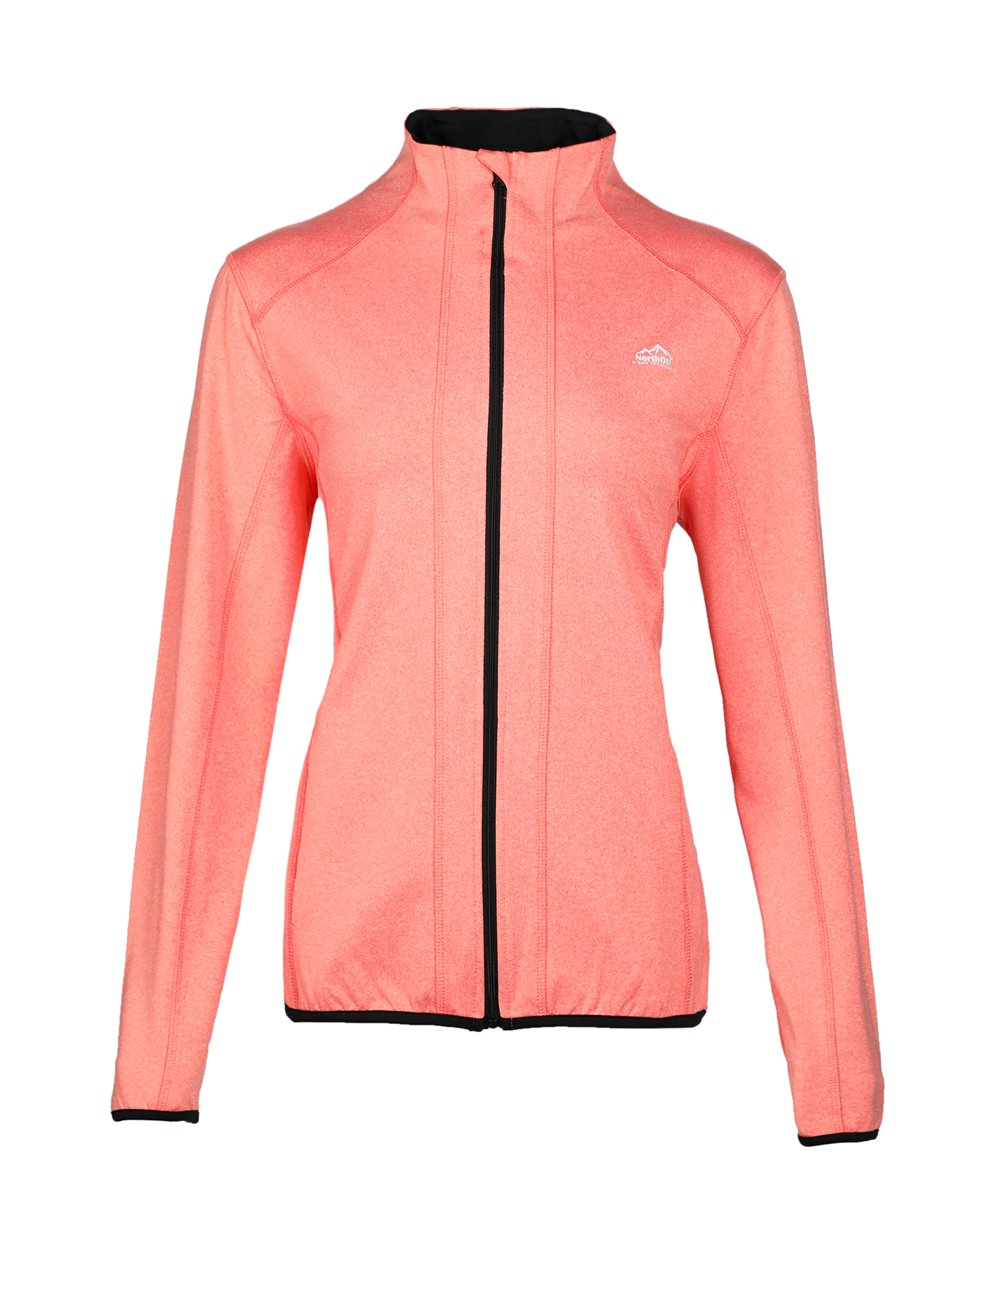 Dolcevida Women's Full Zip Long Sleeves Running Activewear Yoga Track Jackets (Coral, L) by Dolcevida